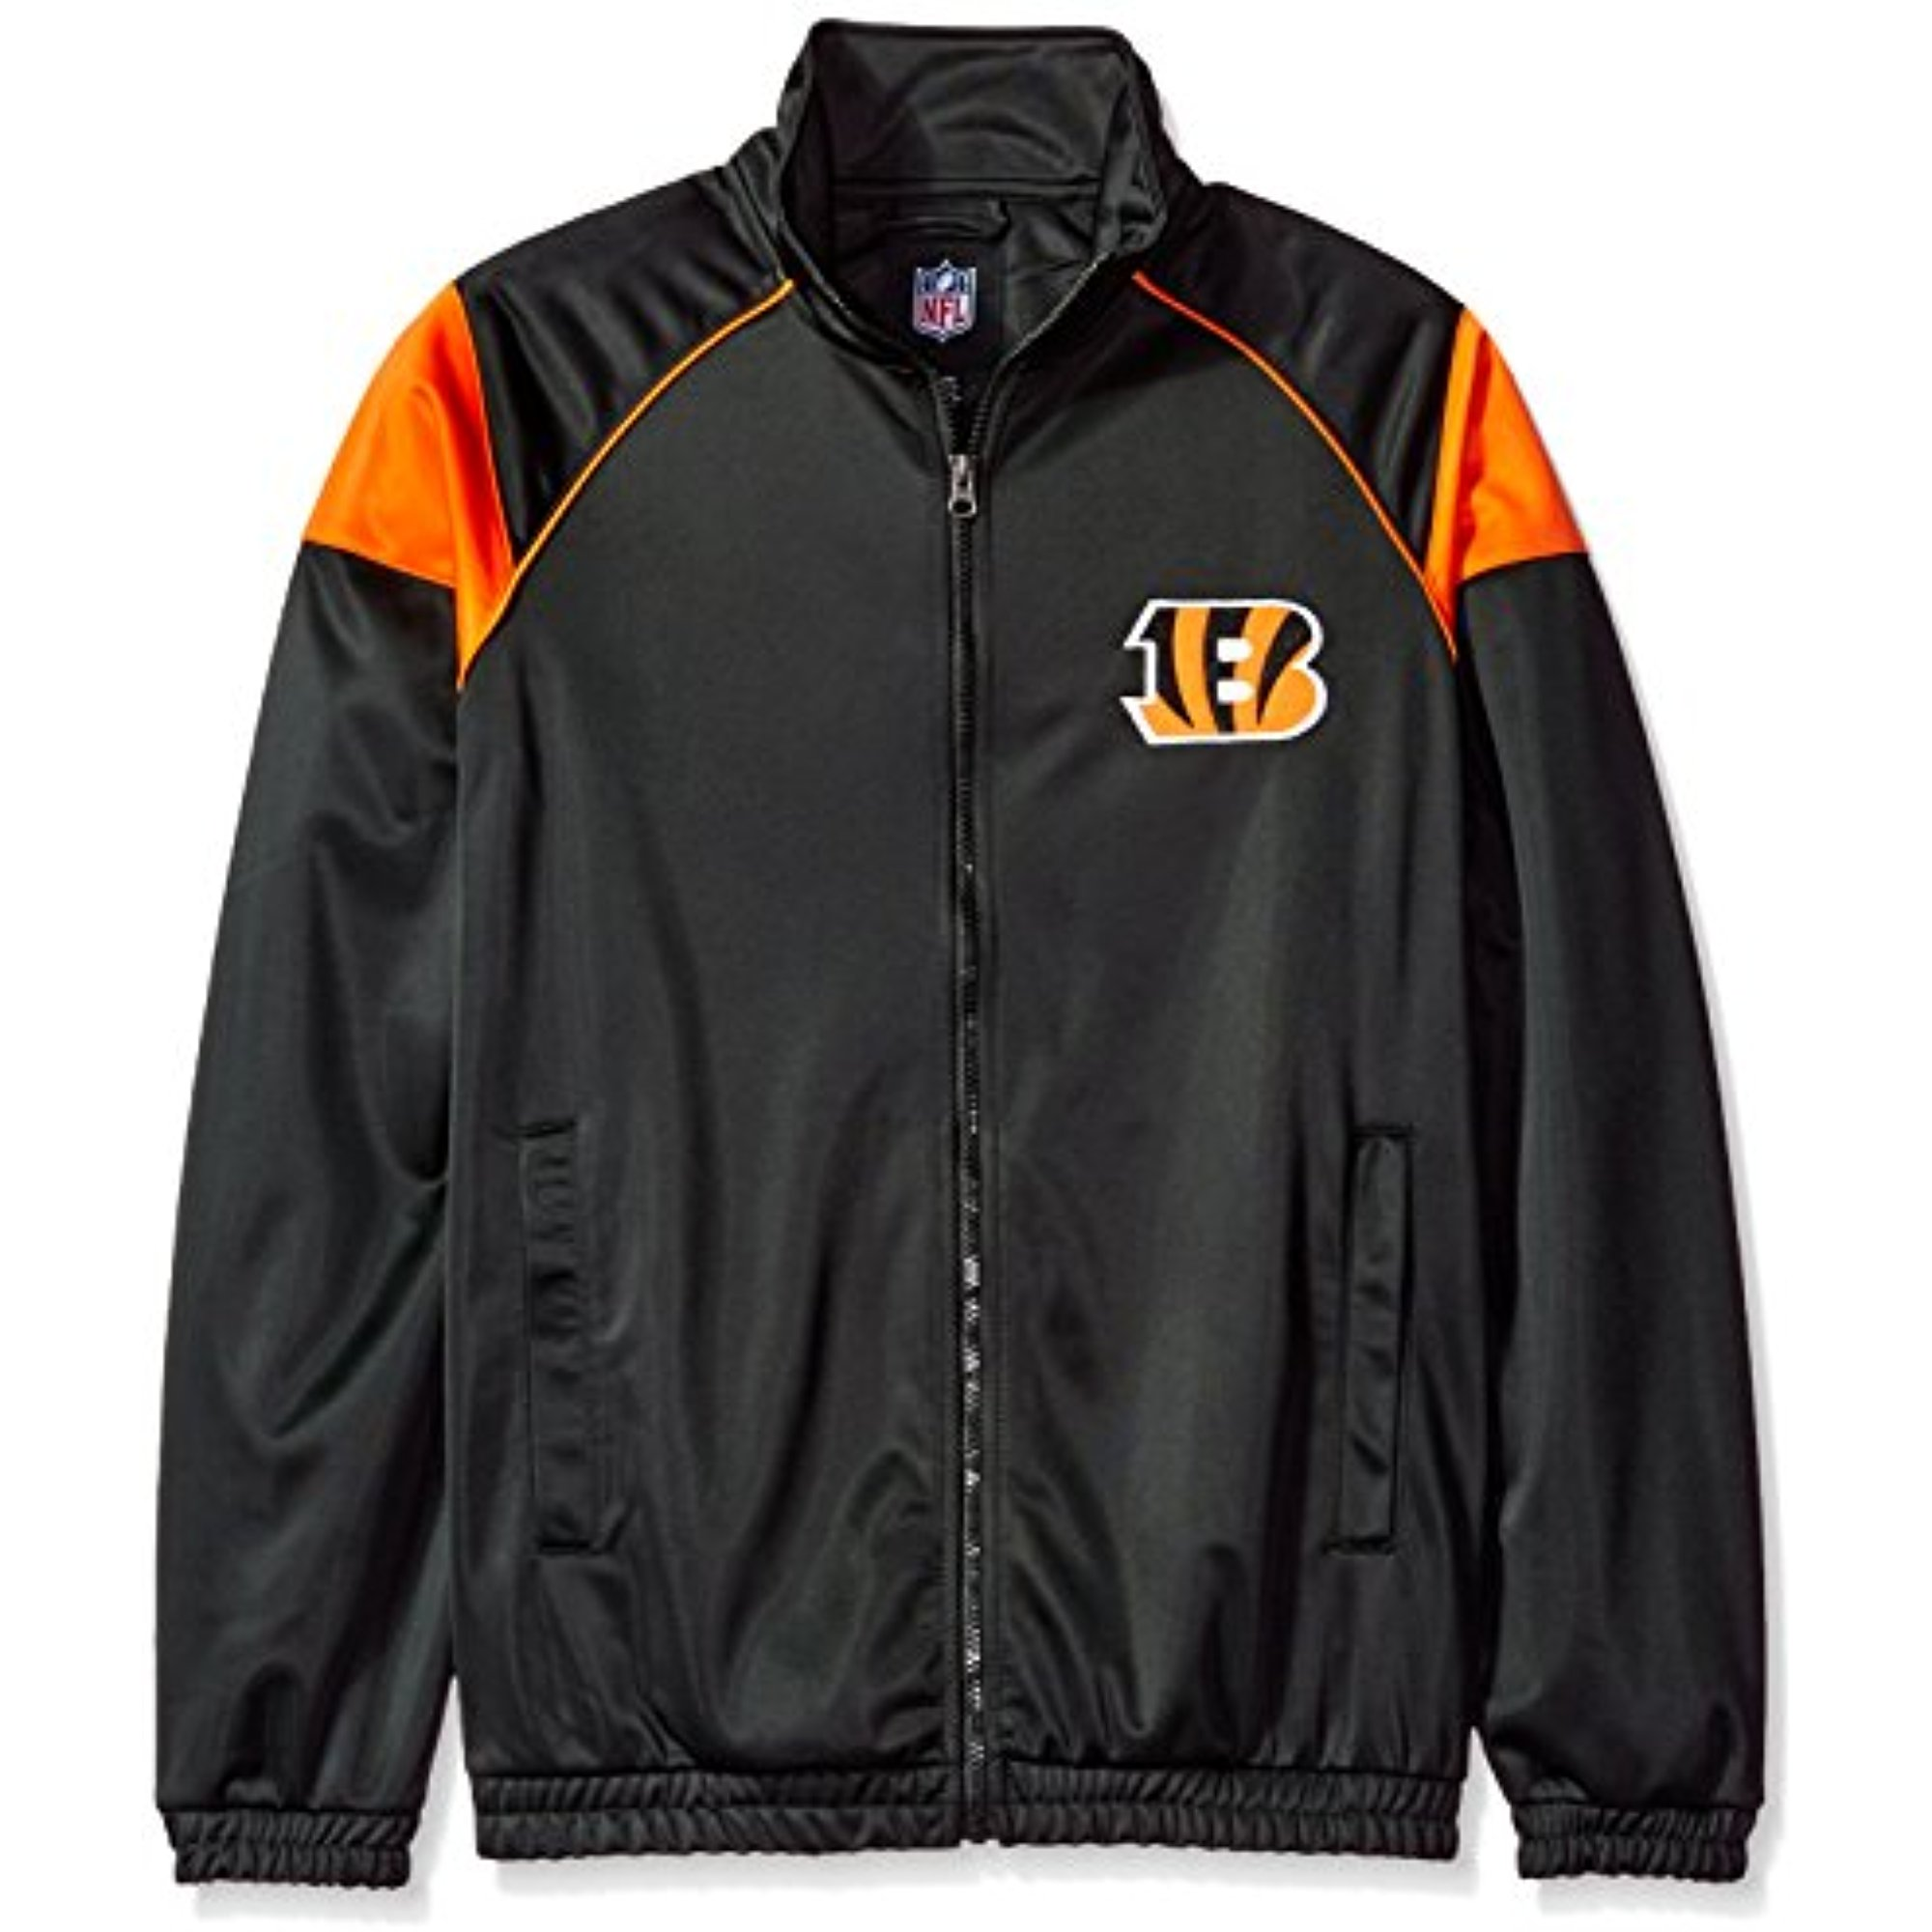 NFL Cincinnati Bengals Men's G-III Sports Dash Track Jacket, Black, Large